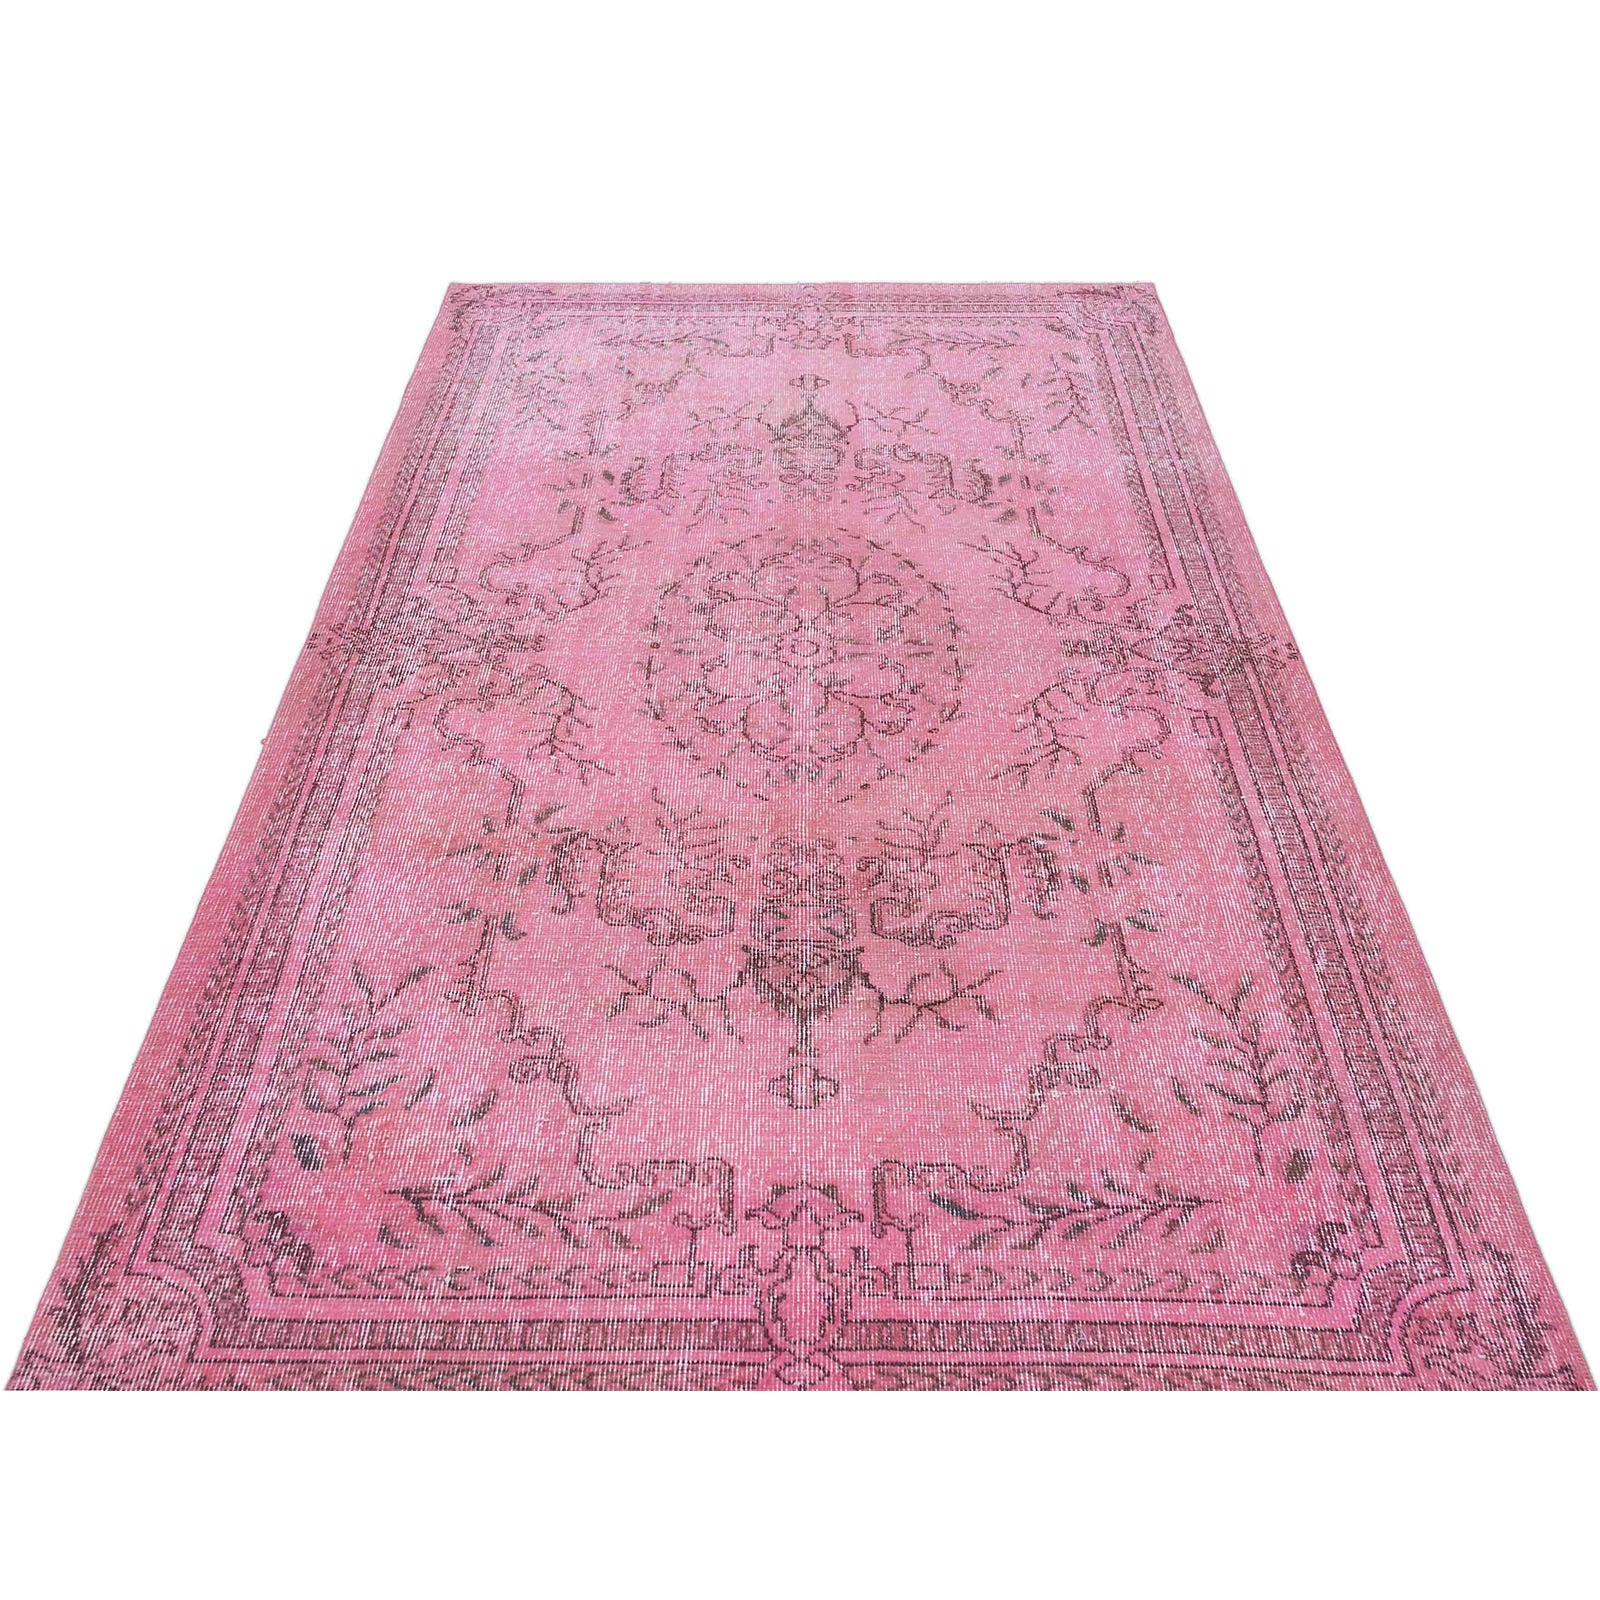 Hali 143X237  CM Bursa Handmade over dyed rug  1388